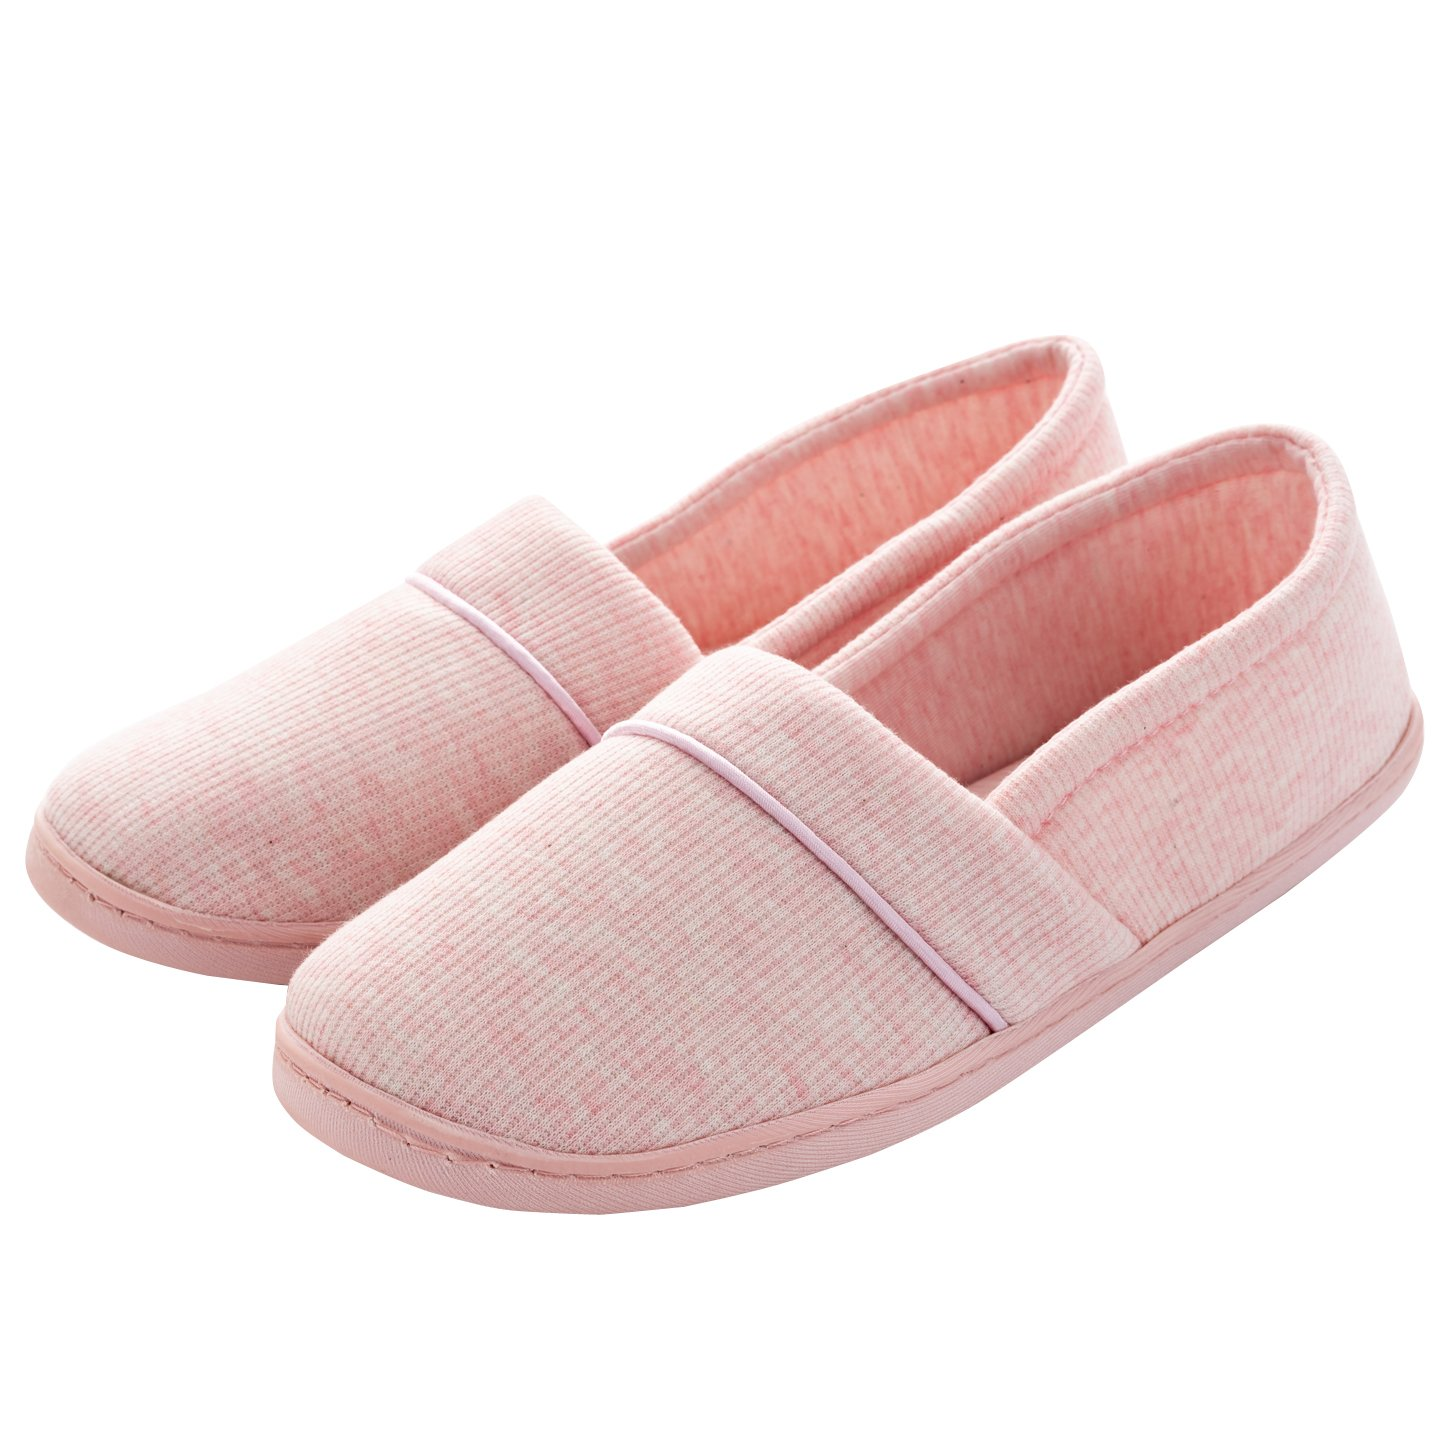 Women Cotton Home Slipper Comfortable Soft Sole Indoor Anti-Slip House Shoes